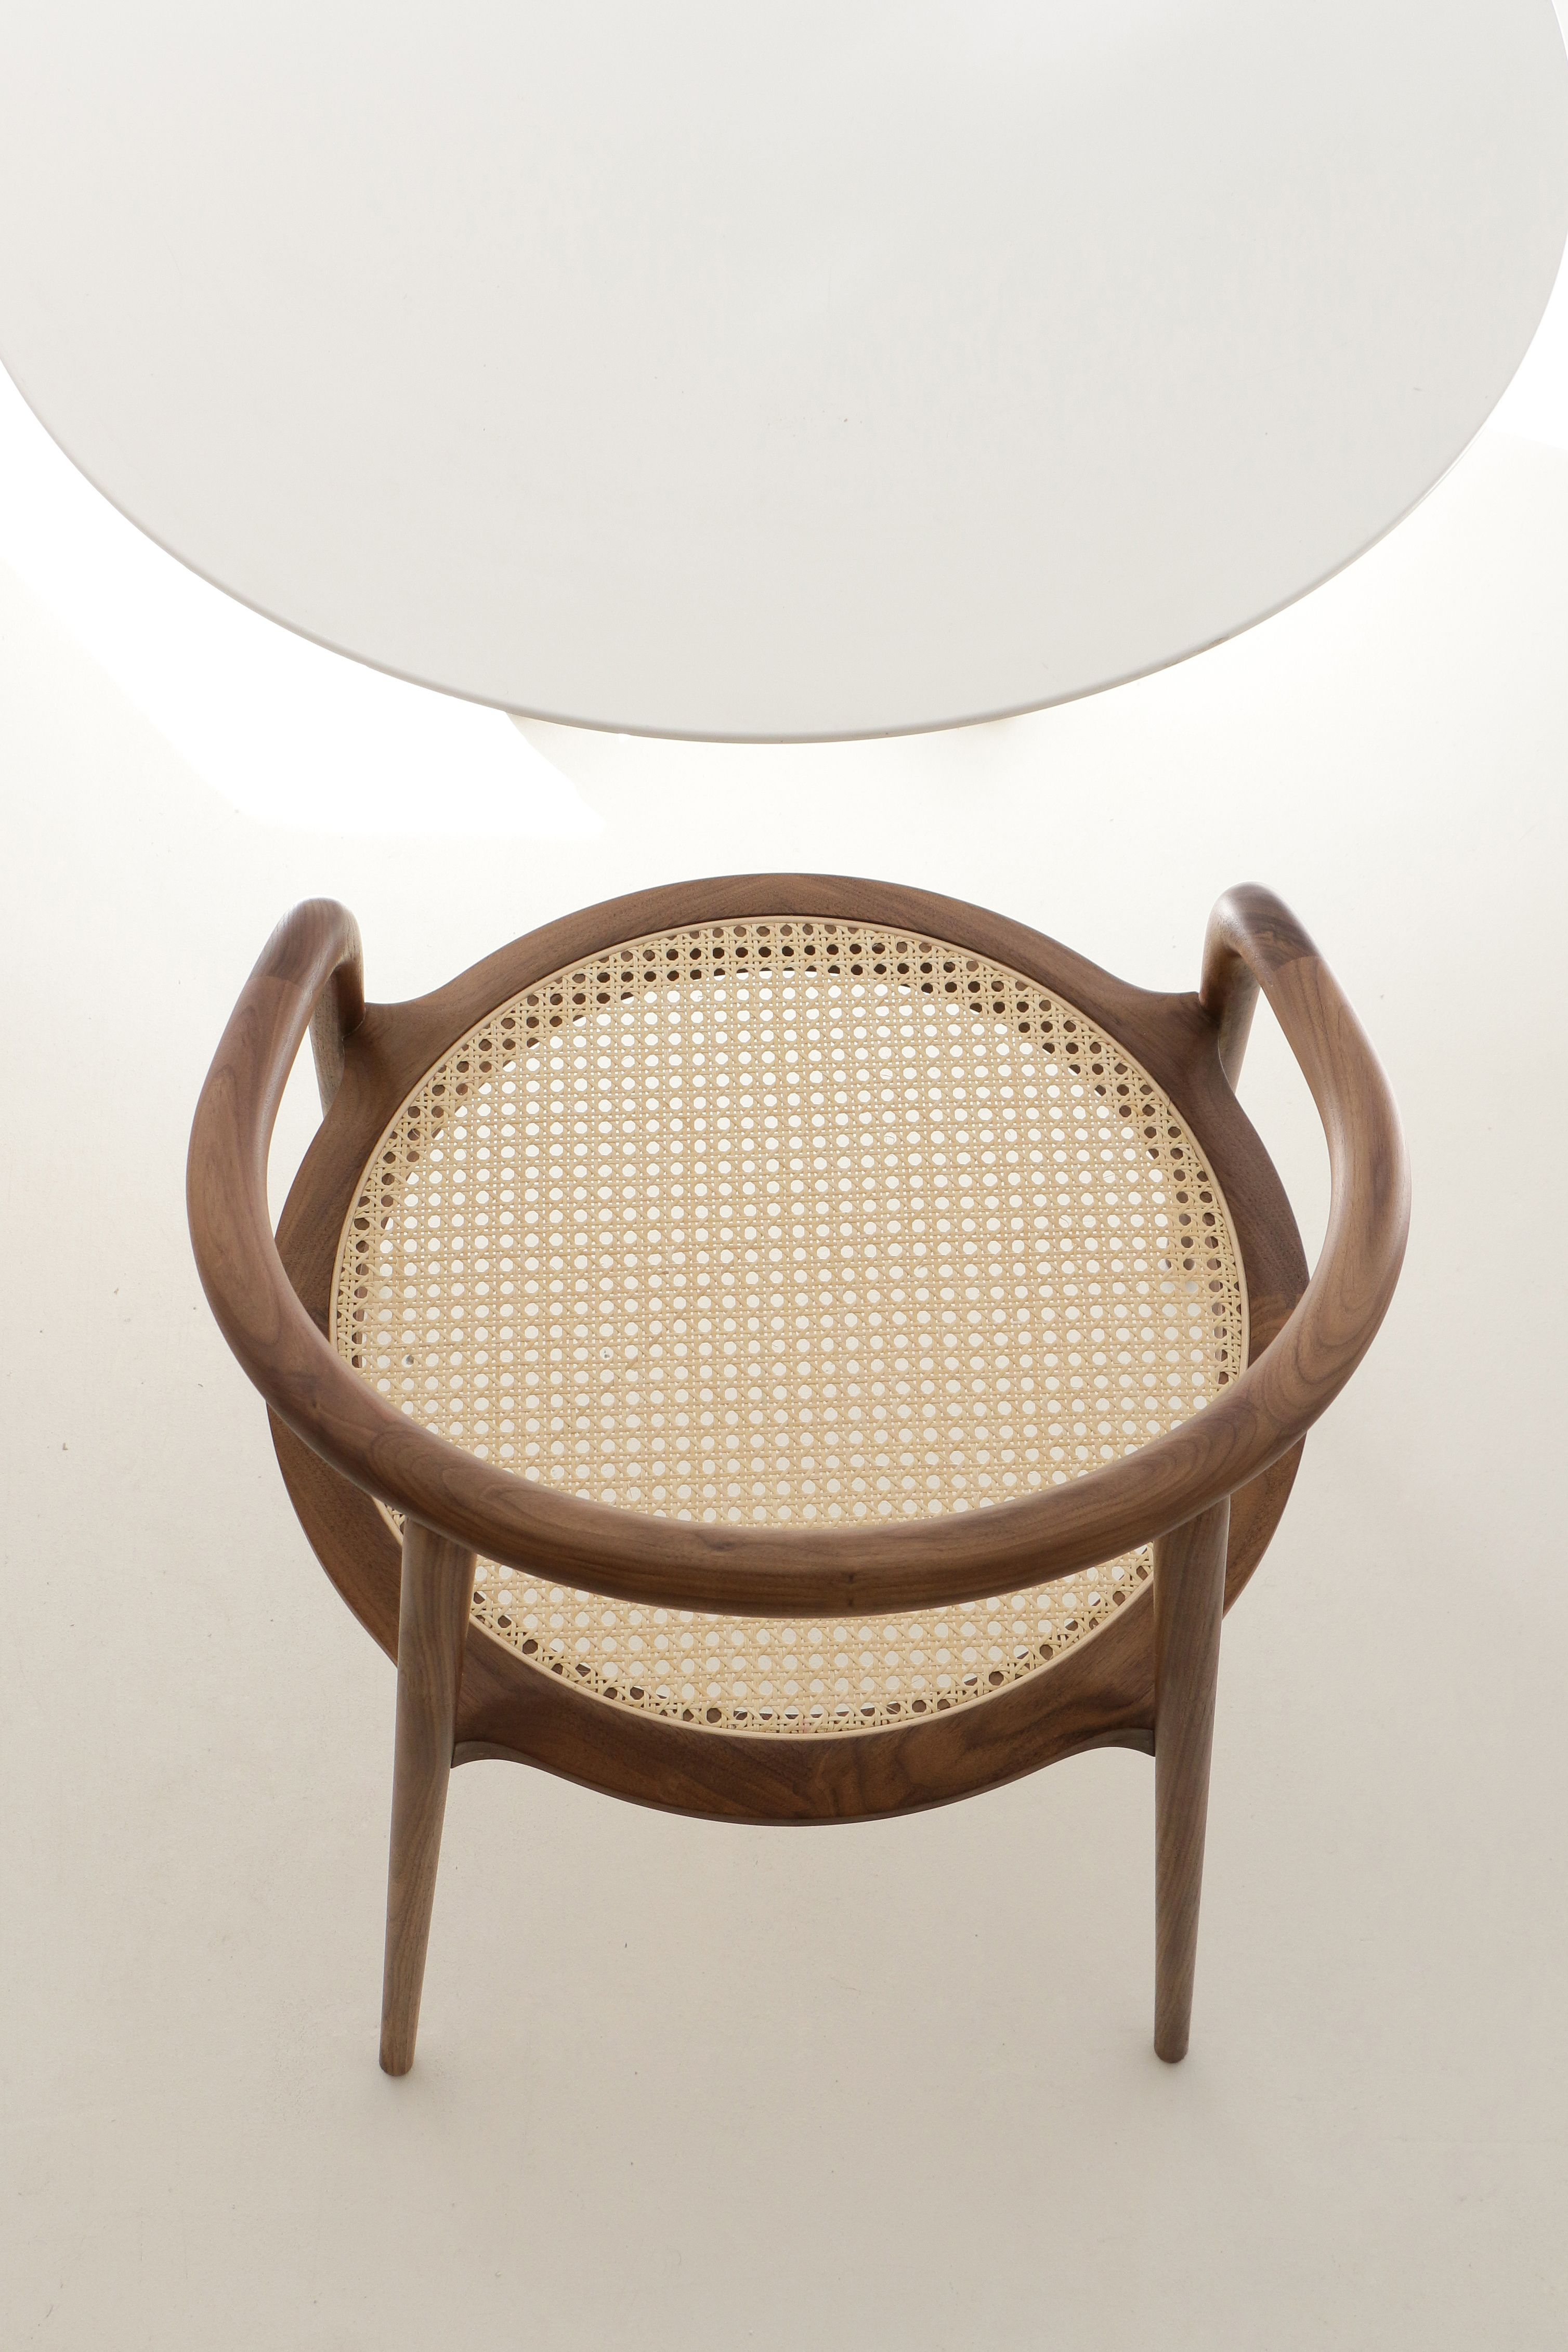 Aranha walnut chair by branca lisboa design marco sousa for Mobili design scontati